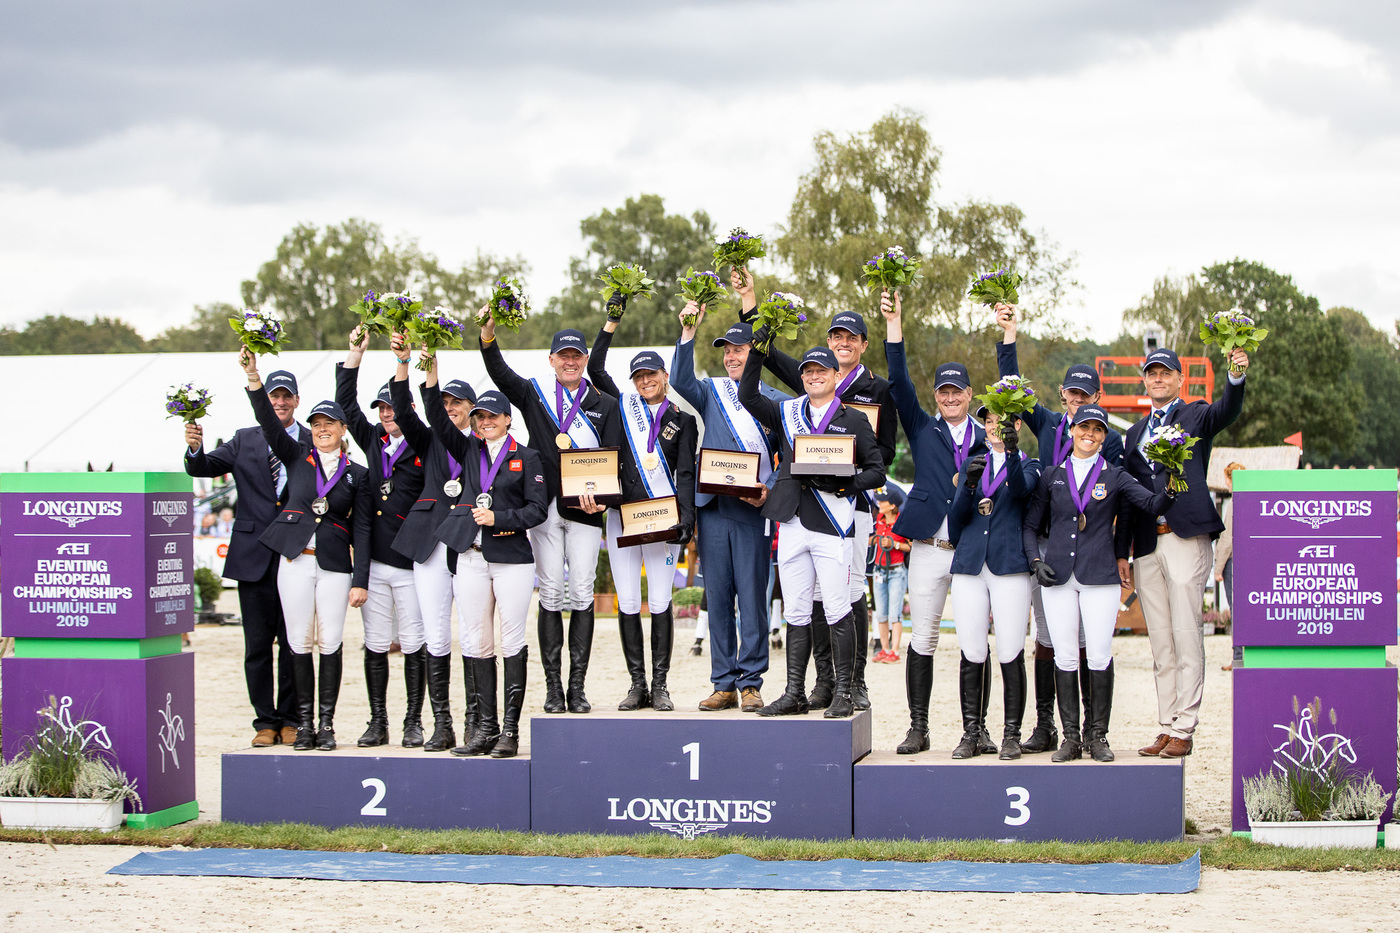 Longines Eventing Event: Team Germany claimed the 2019 Longines FEI Eventing European Championships crown in Luhmühlen 5